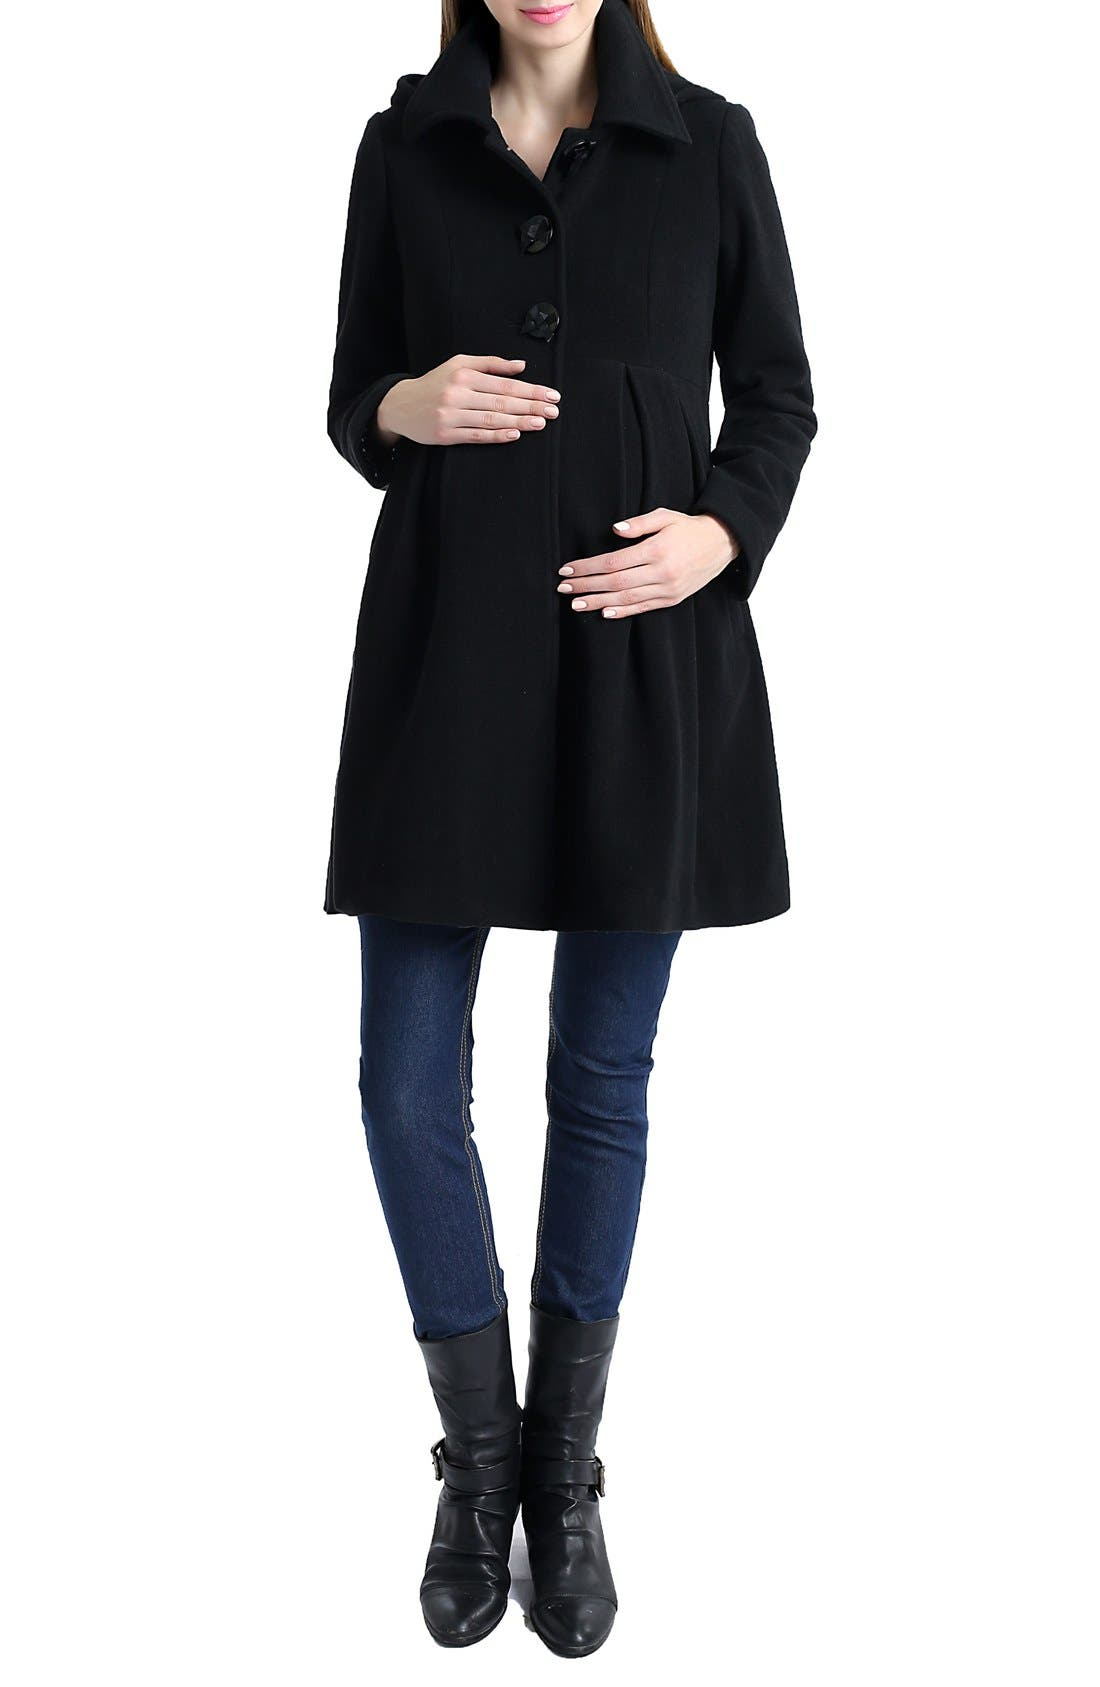 KIMI AND KAI, Faye Hooded Maternity Peacoat, Main thumbnail 1, color, 001